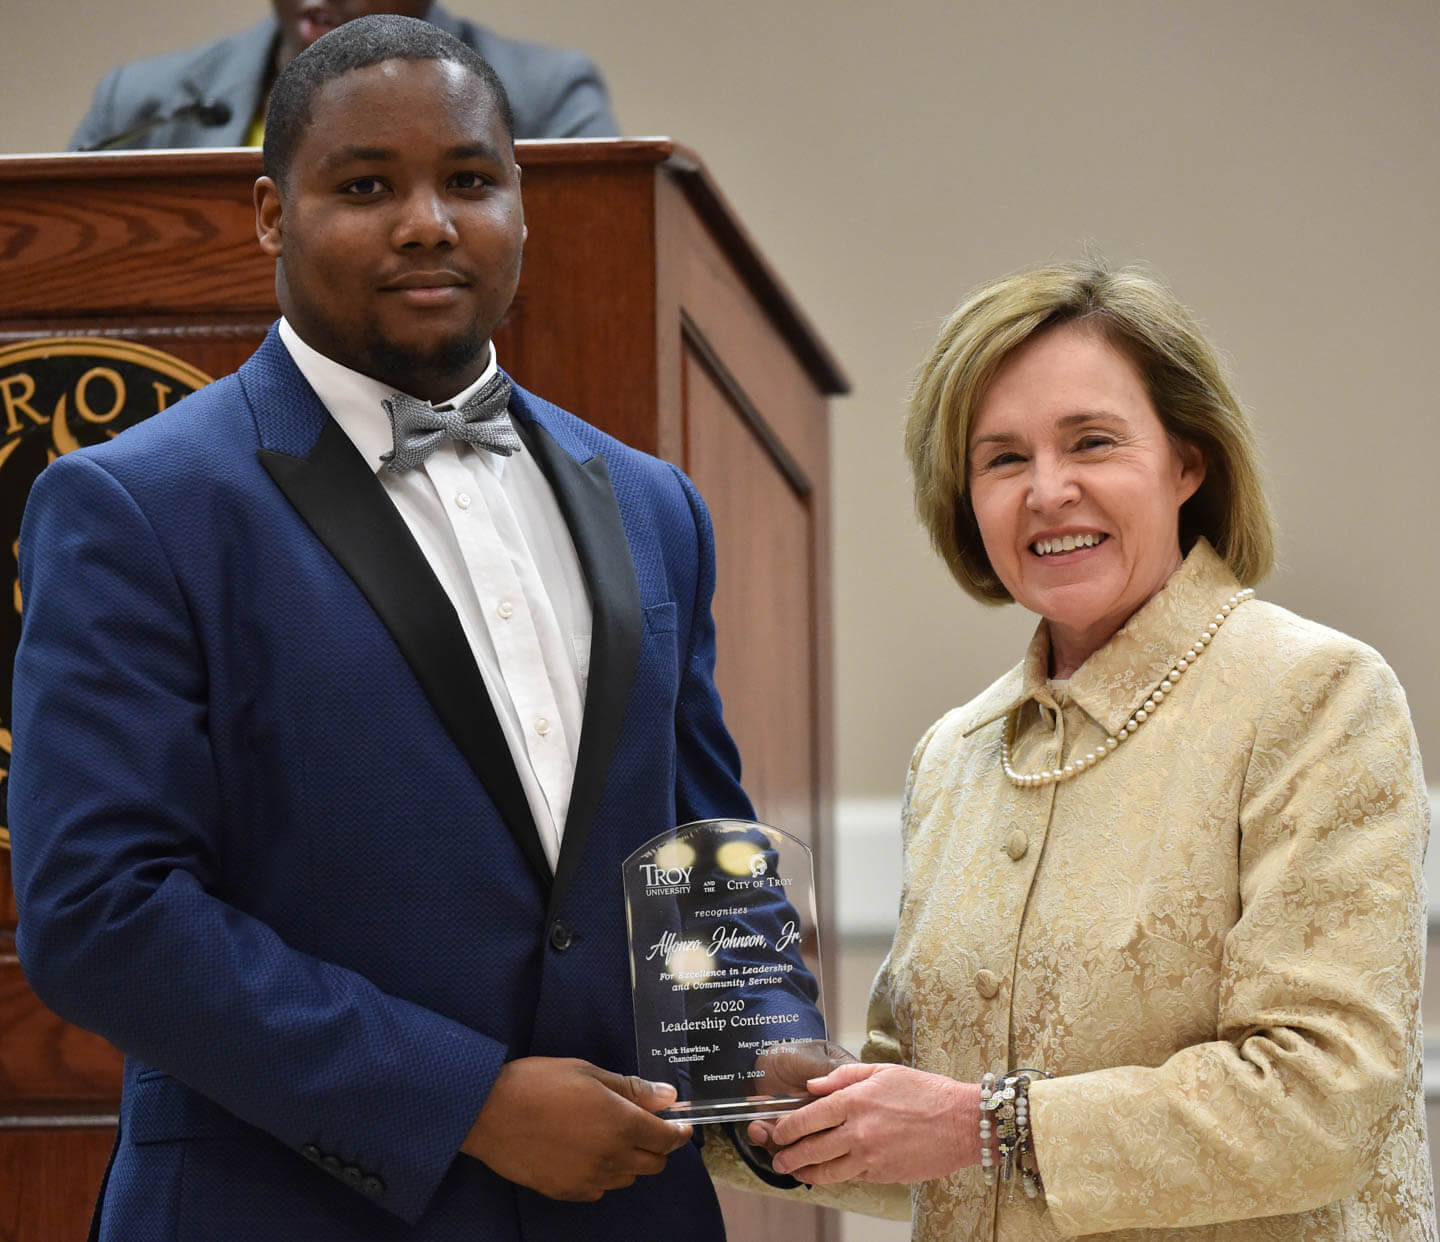 Herman Johnson, Jr. receiving student award from Barbara Patterson